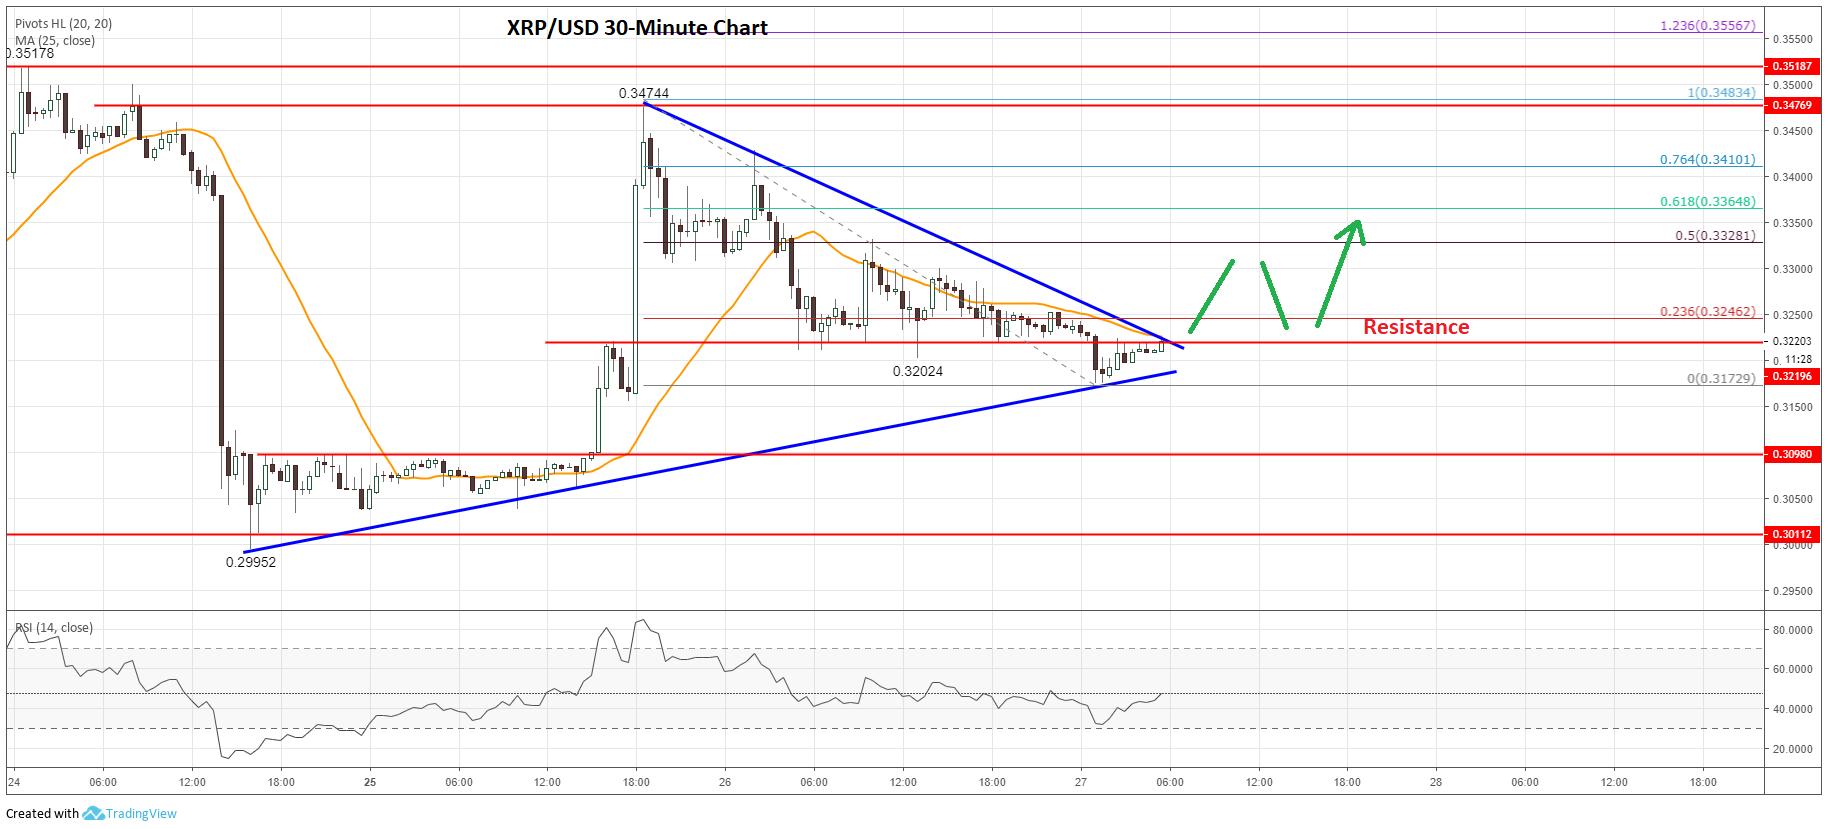 Ripple (XRP) Price Prediction: Likely to Break Higher Soon